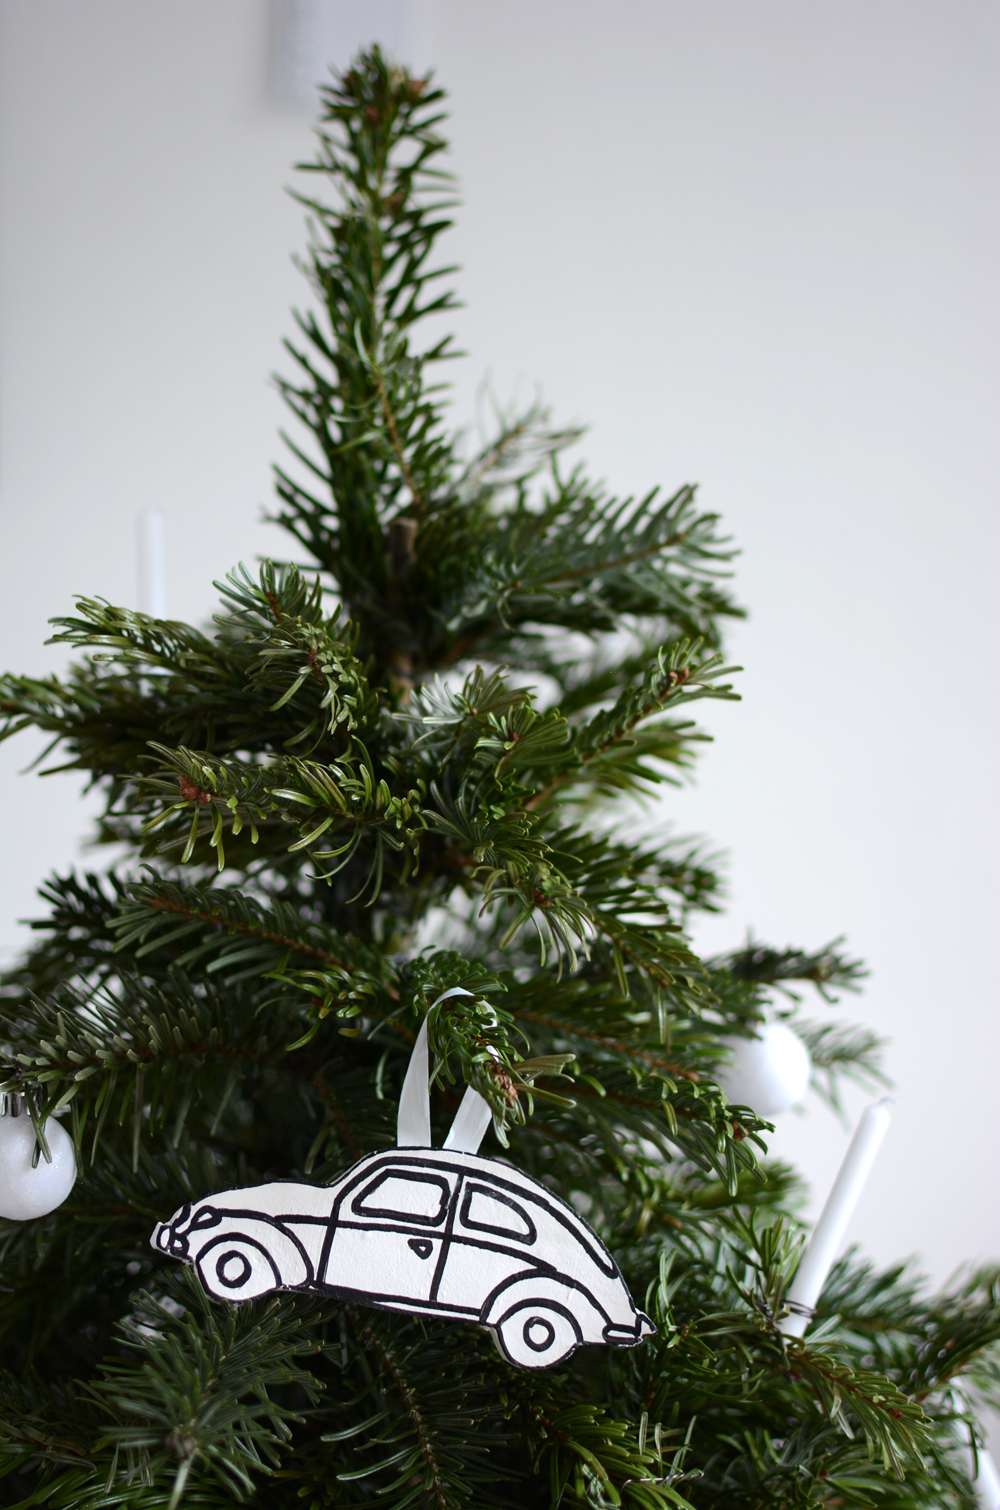 VW-Beetle für Christbaum | we love handmade